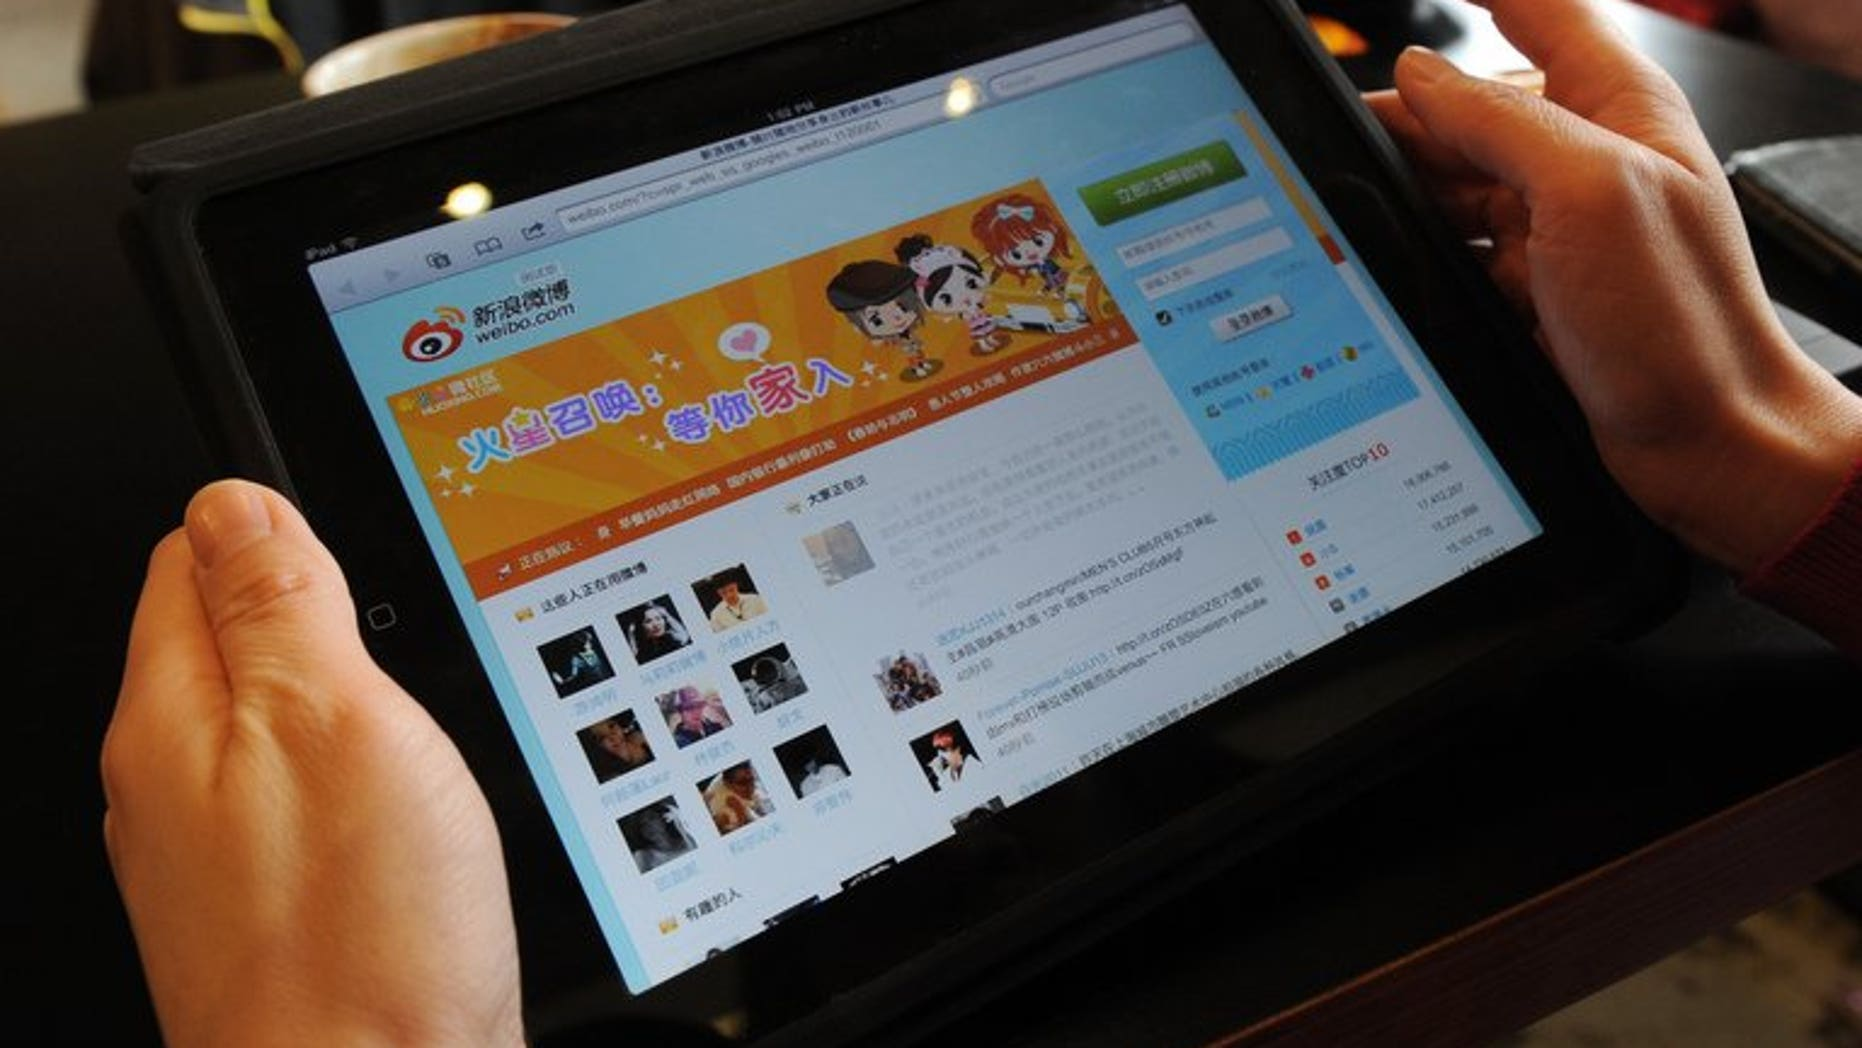 A woman views the Chinese social media website Weibo at a cafe in Beijing on April 2, 2012.